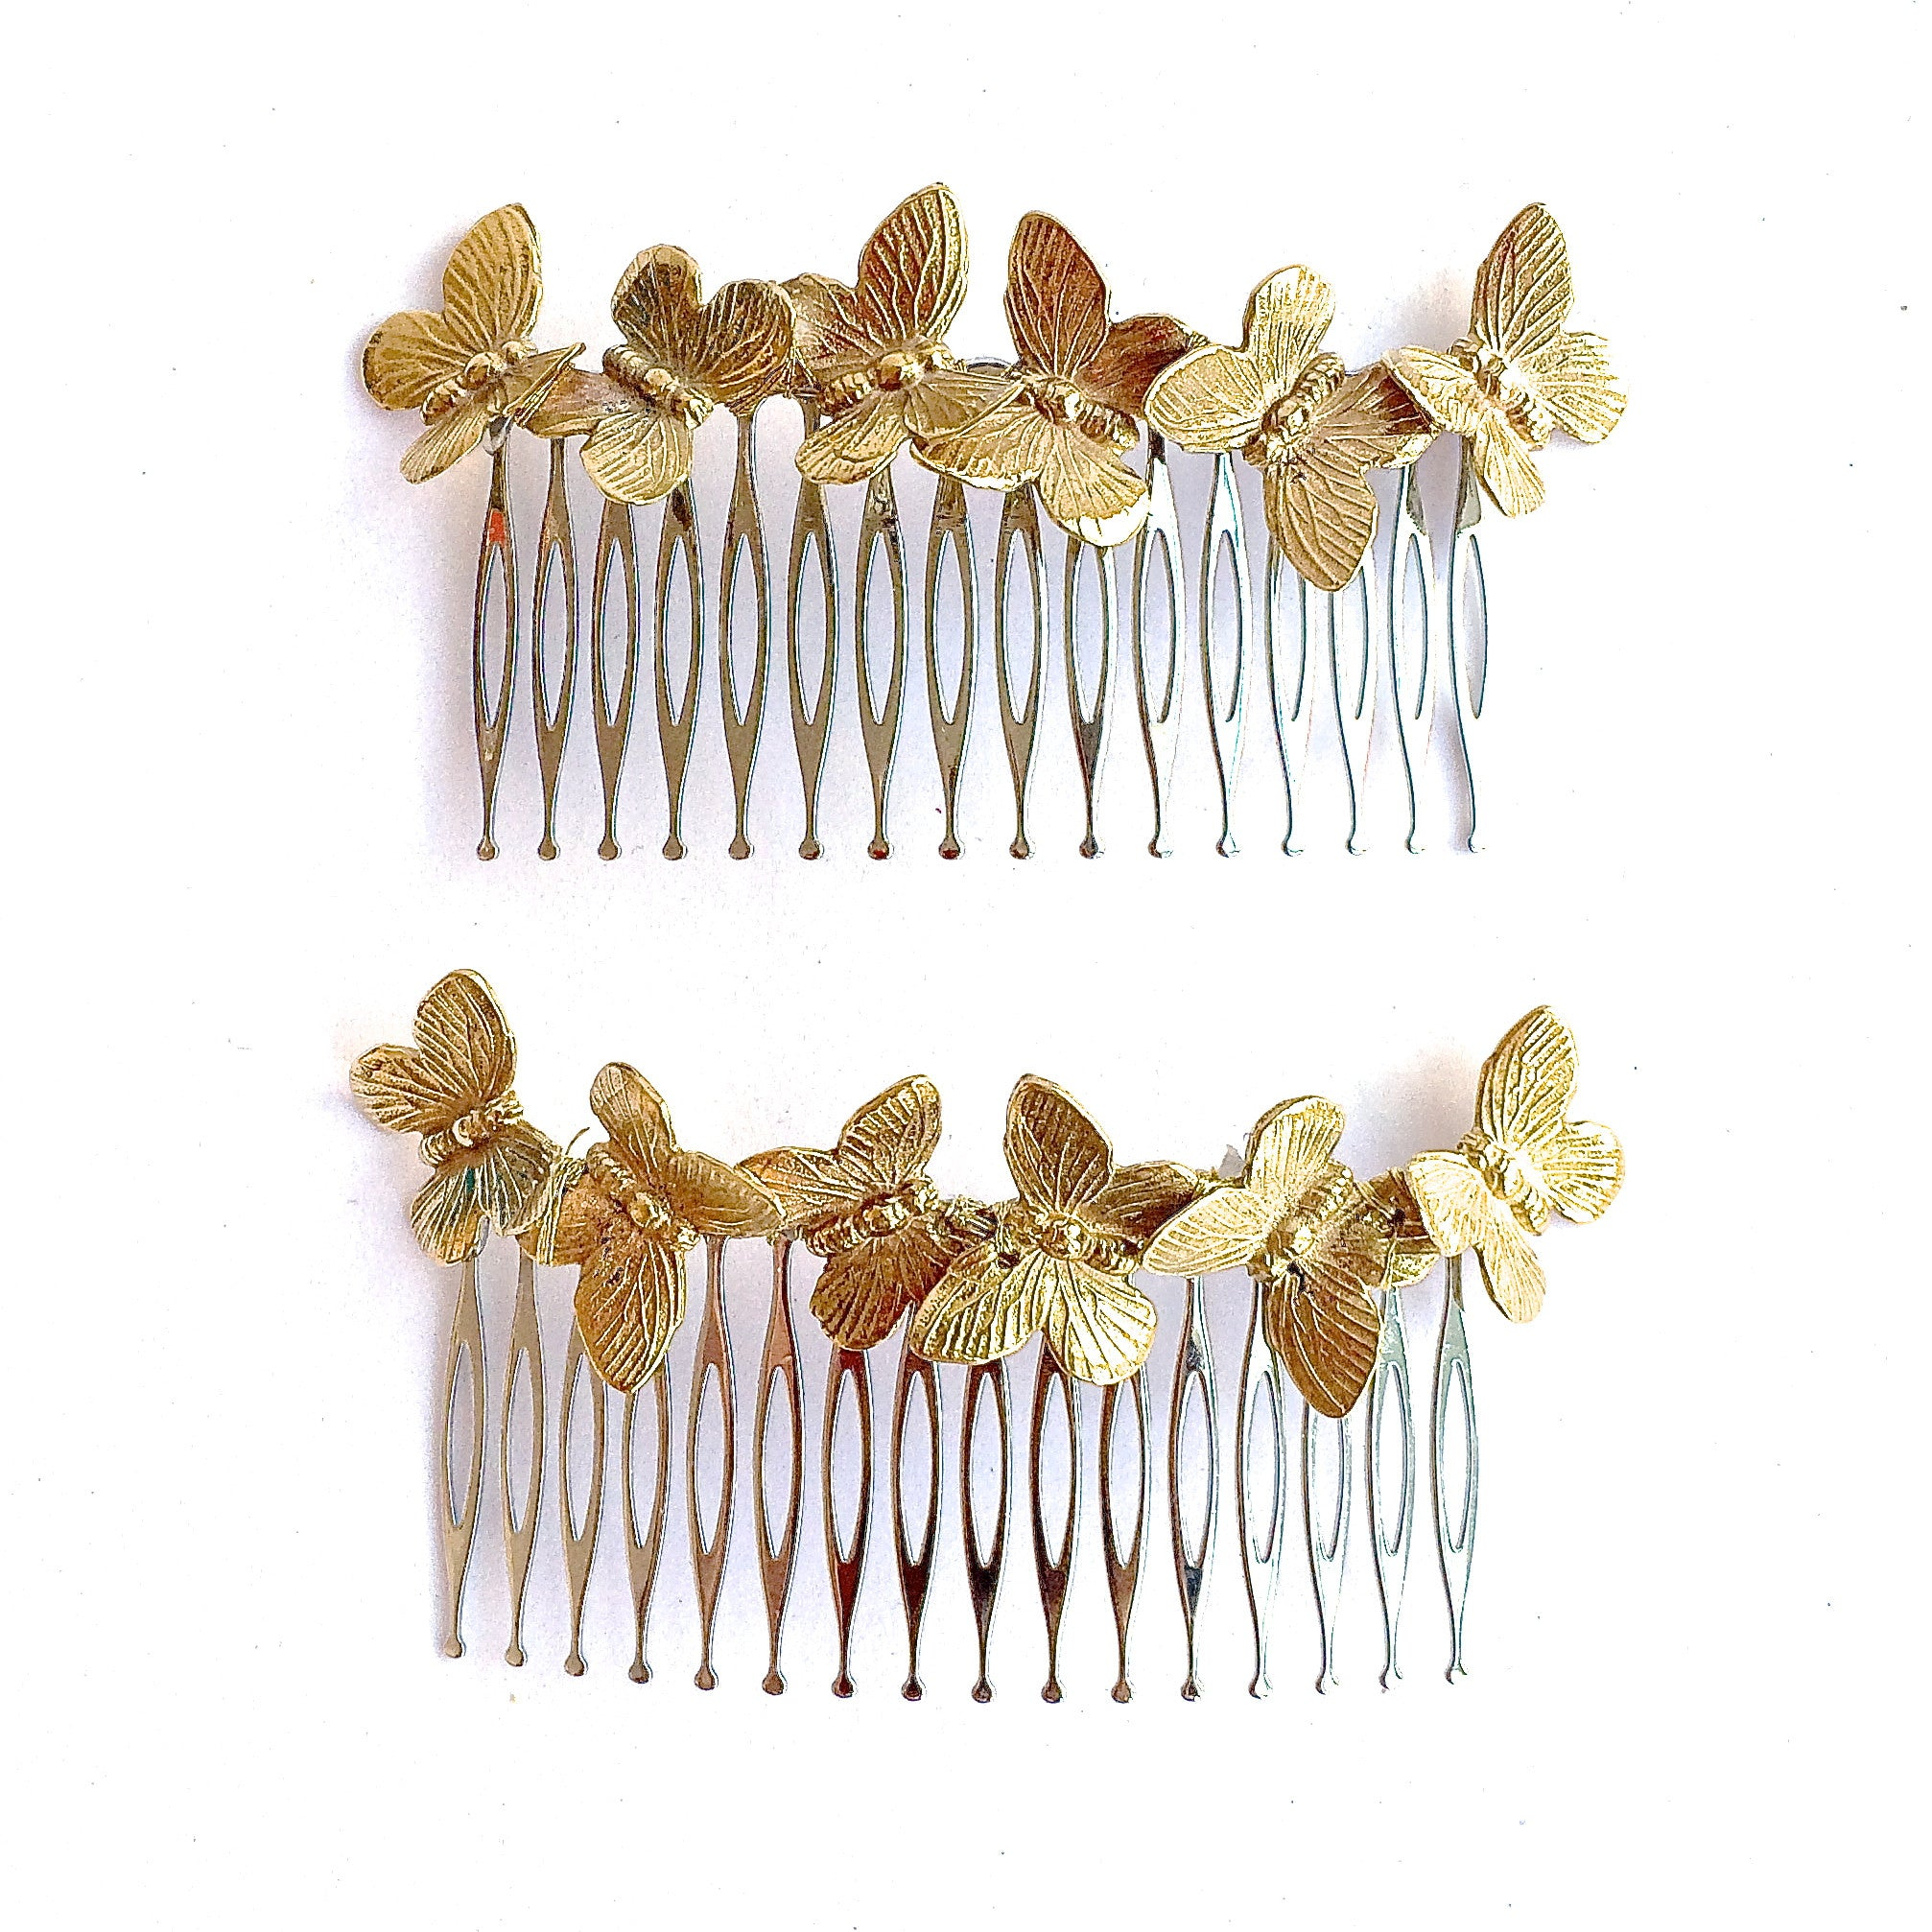 GOLD BUTTERFLIES COMB